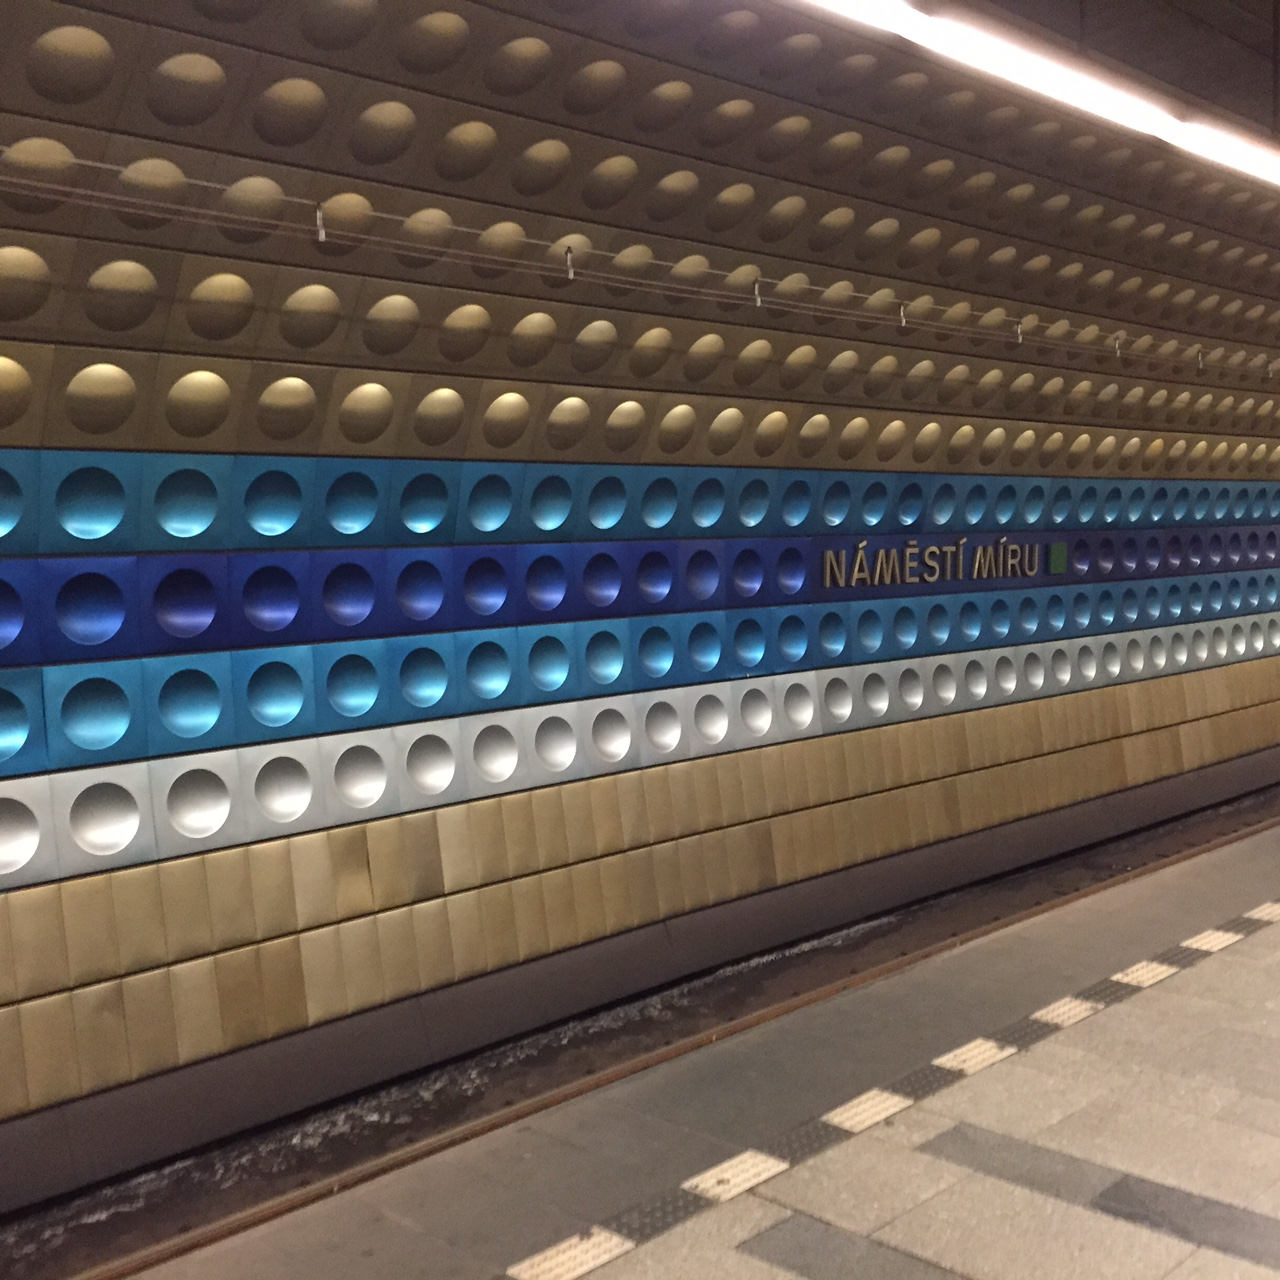 Prague metro station - Namesti Miru